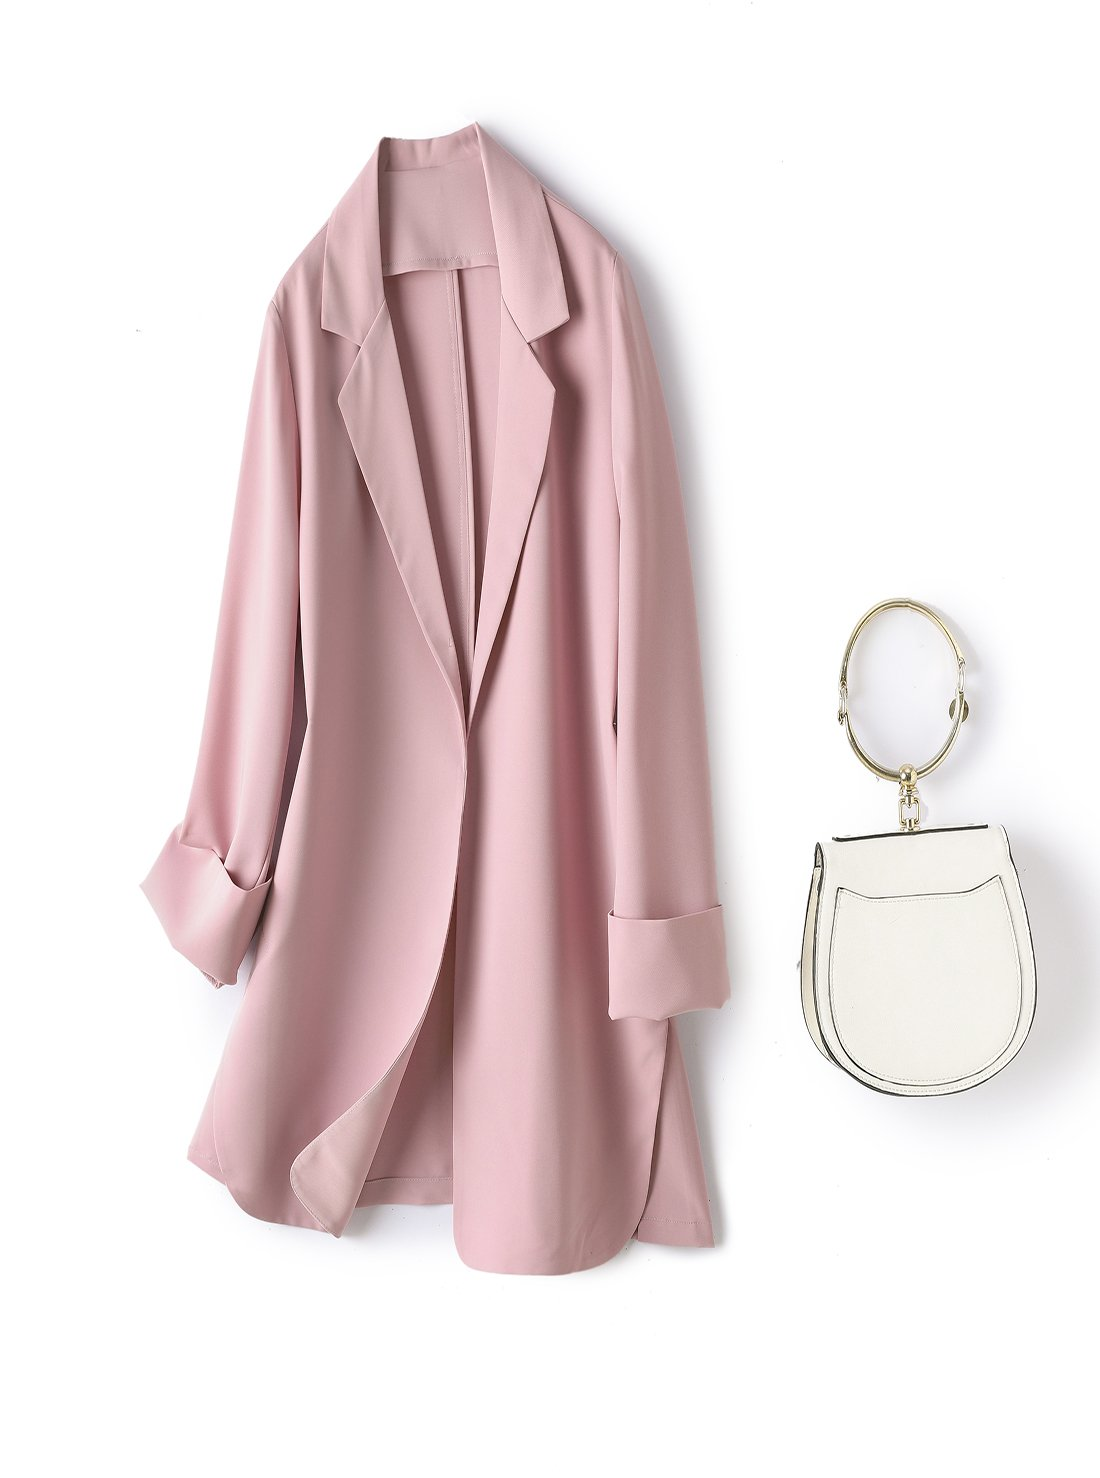 Women's Suit for Casual